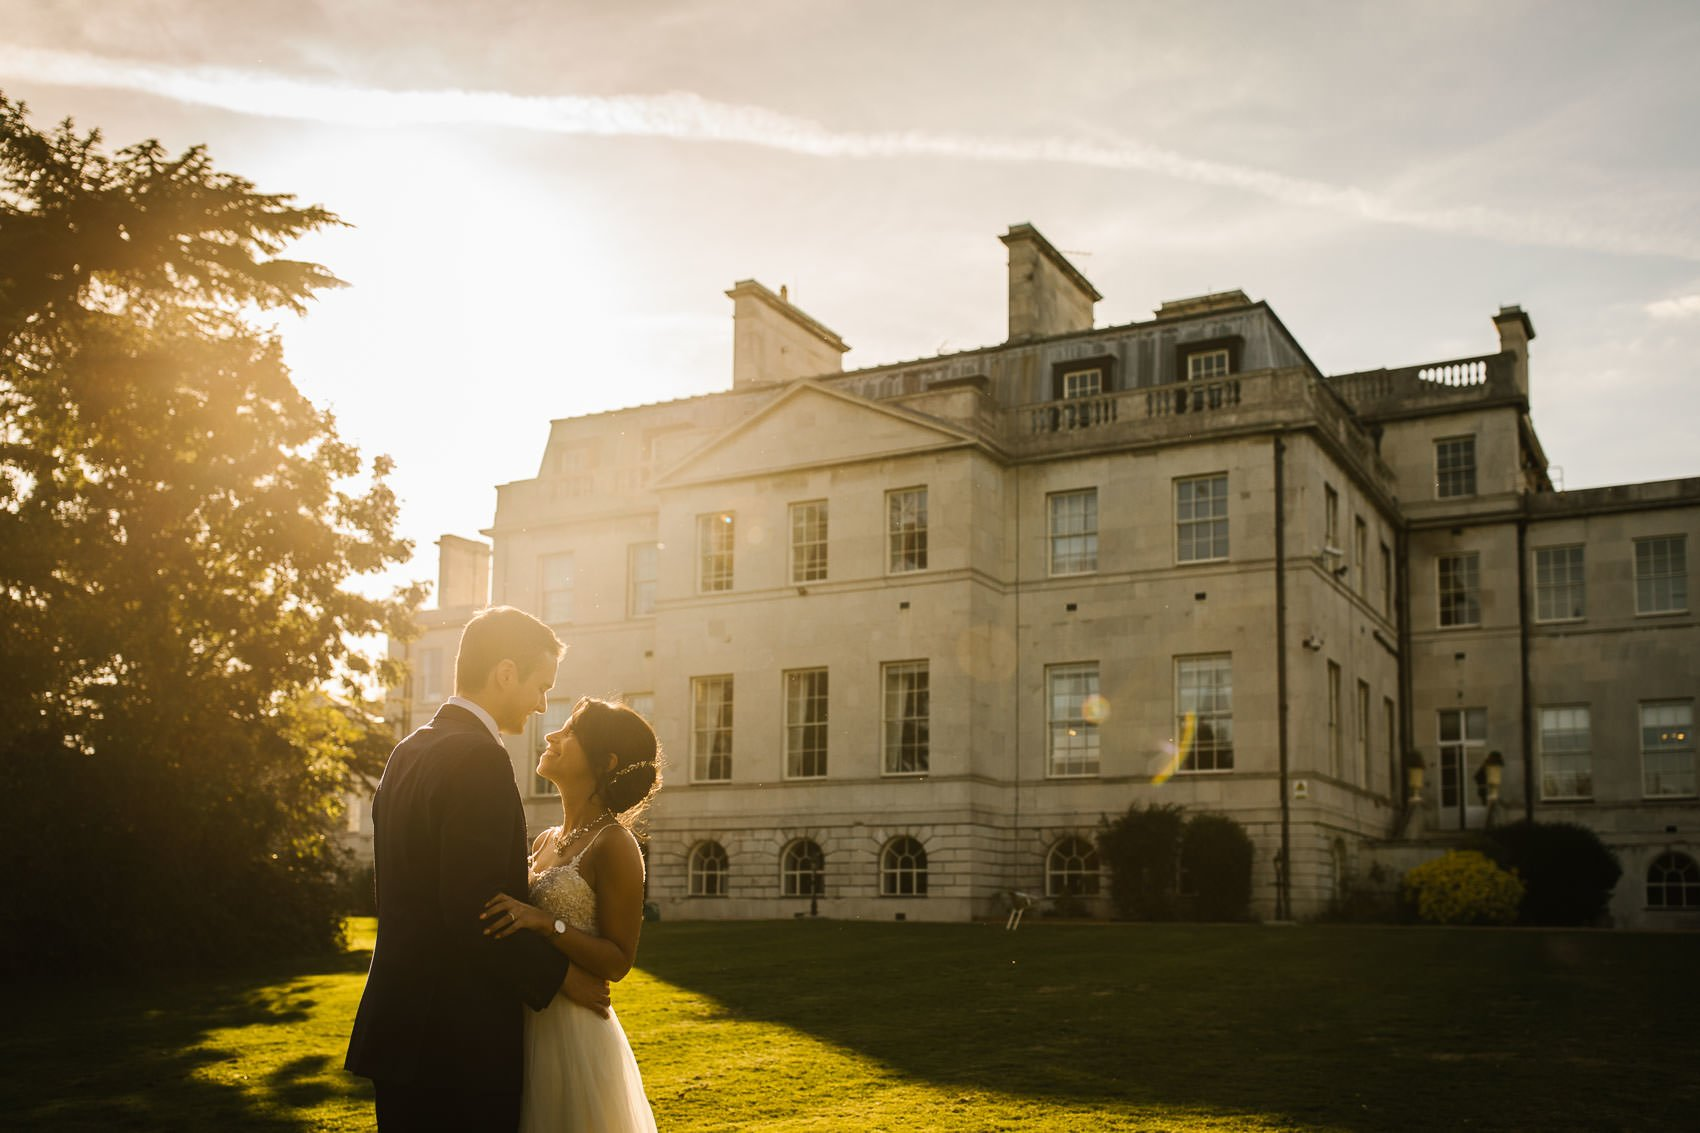 Weddings at Addington Palace